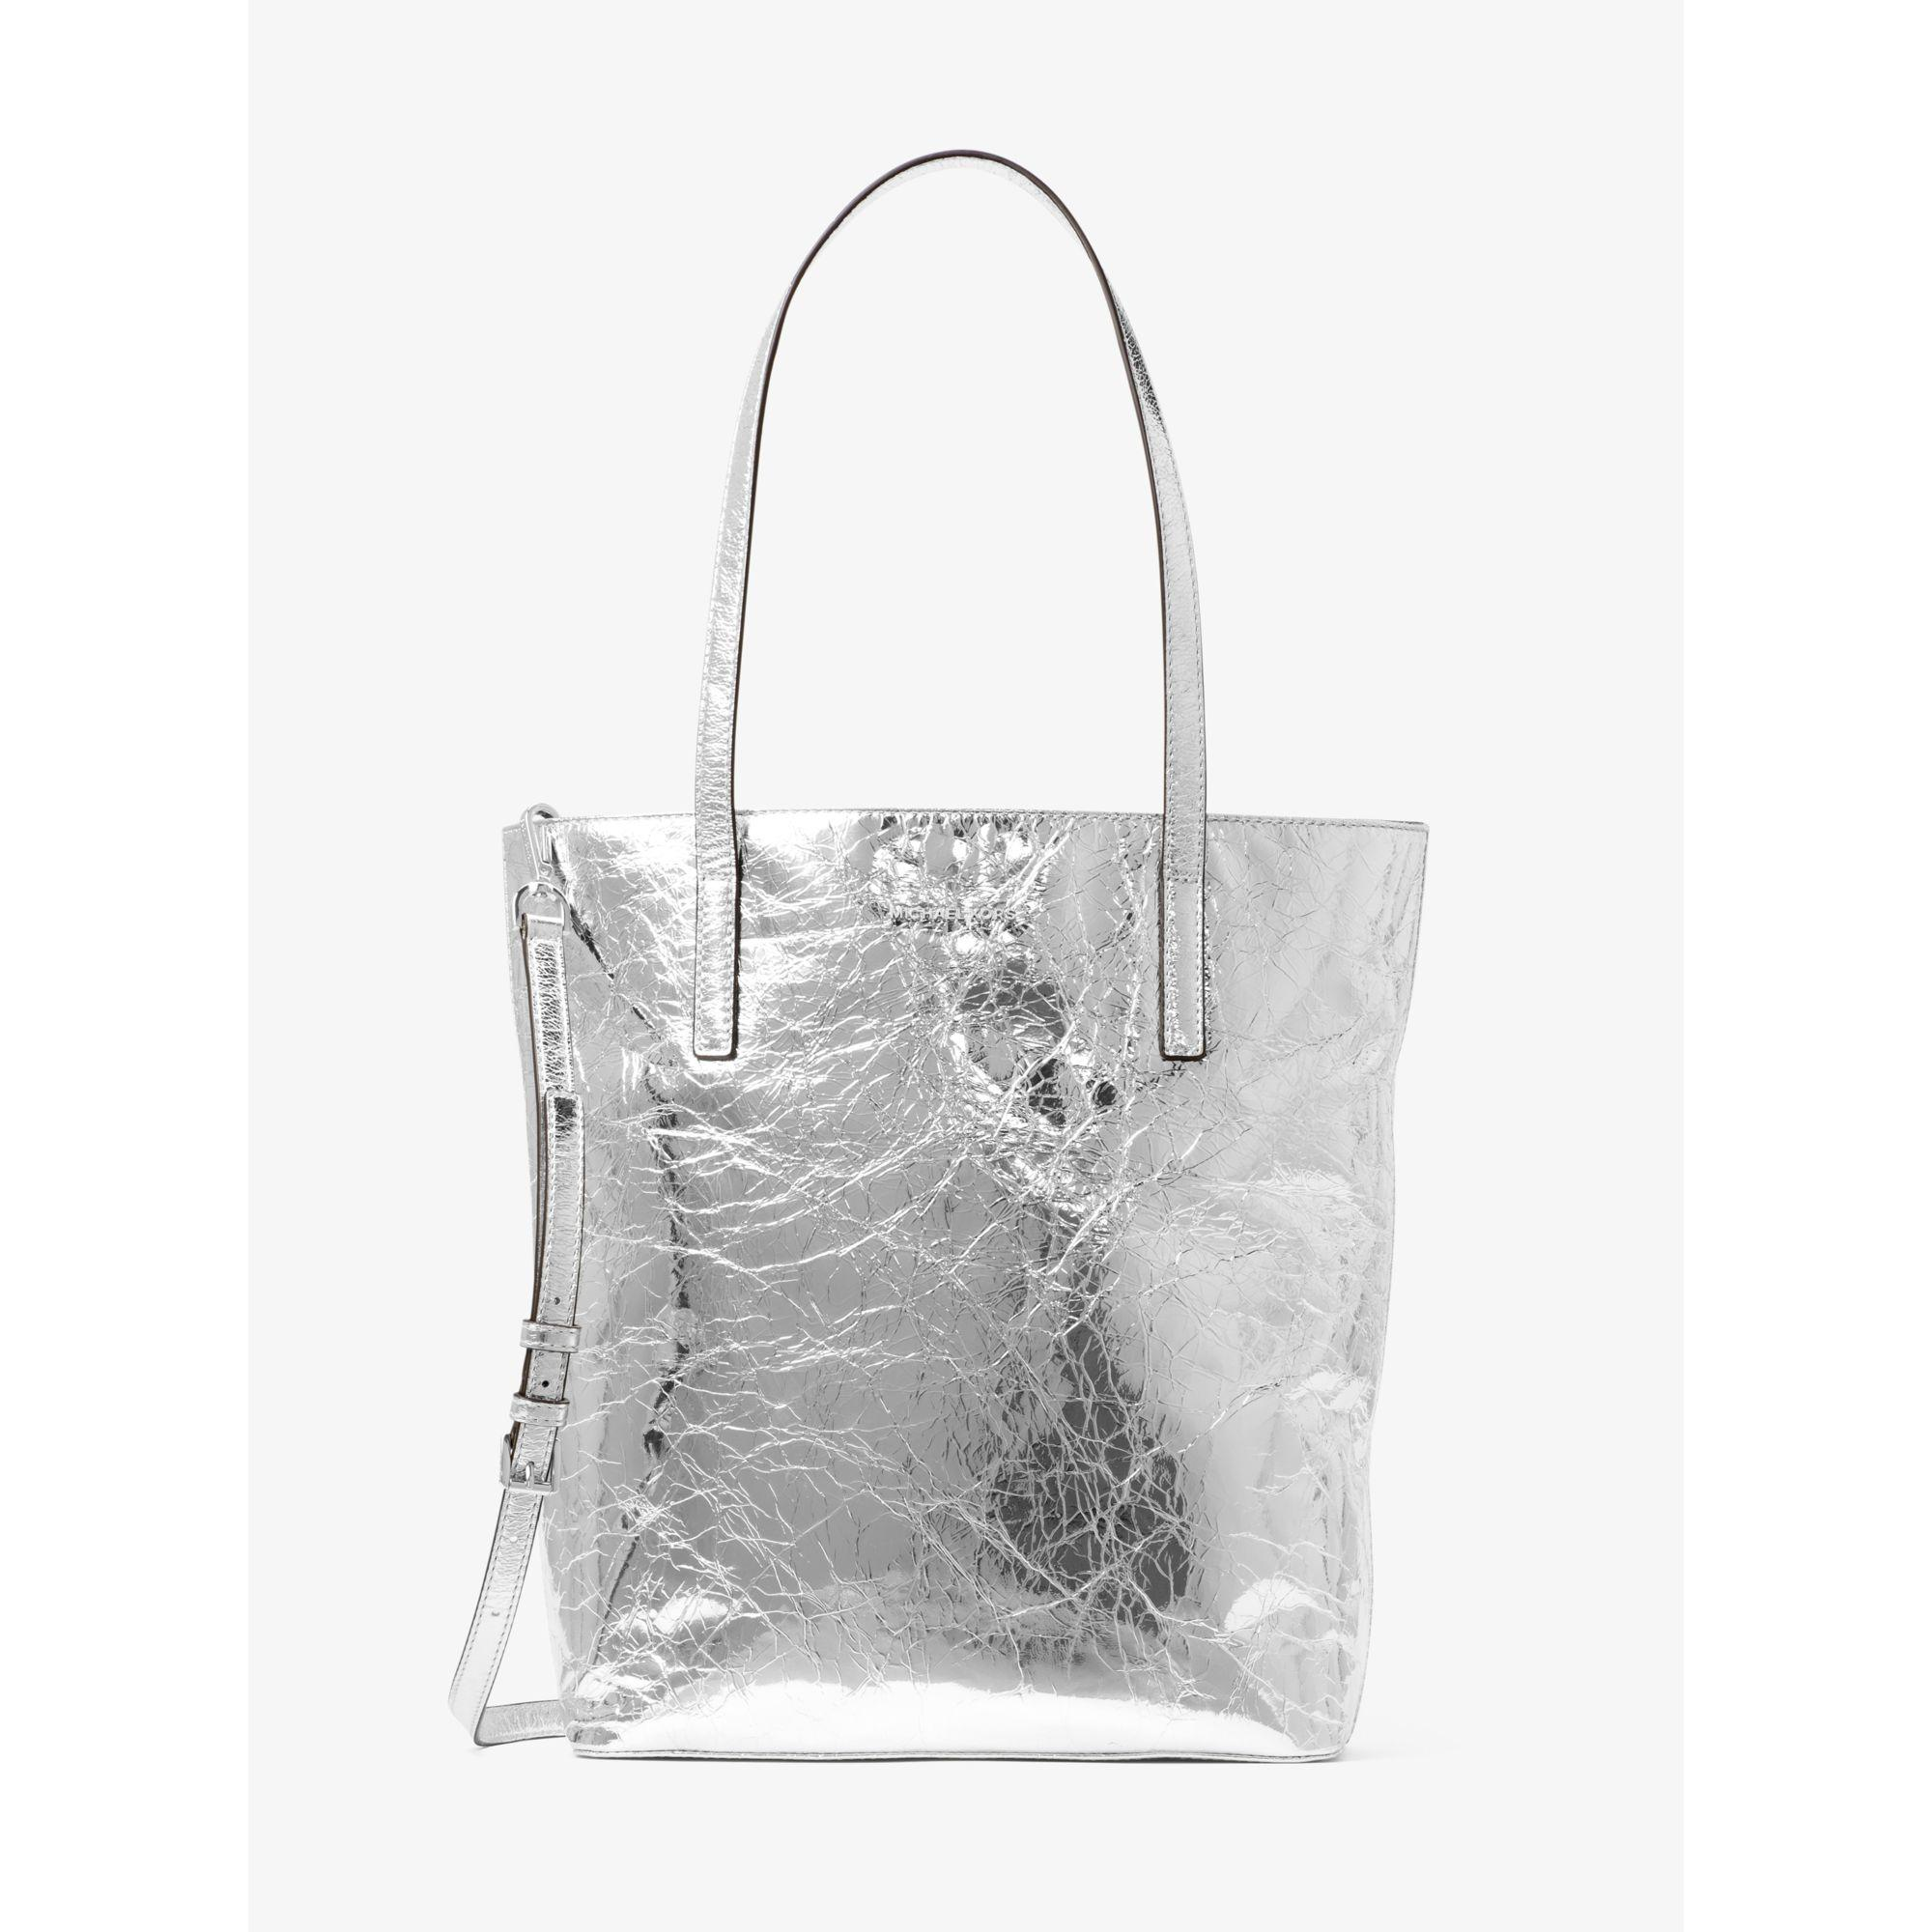 bab0da06c3f2 Lyst - Michael Kors Emry Large Crinkled-leather Tote Bag in Metallic